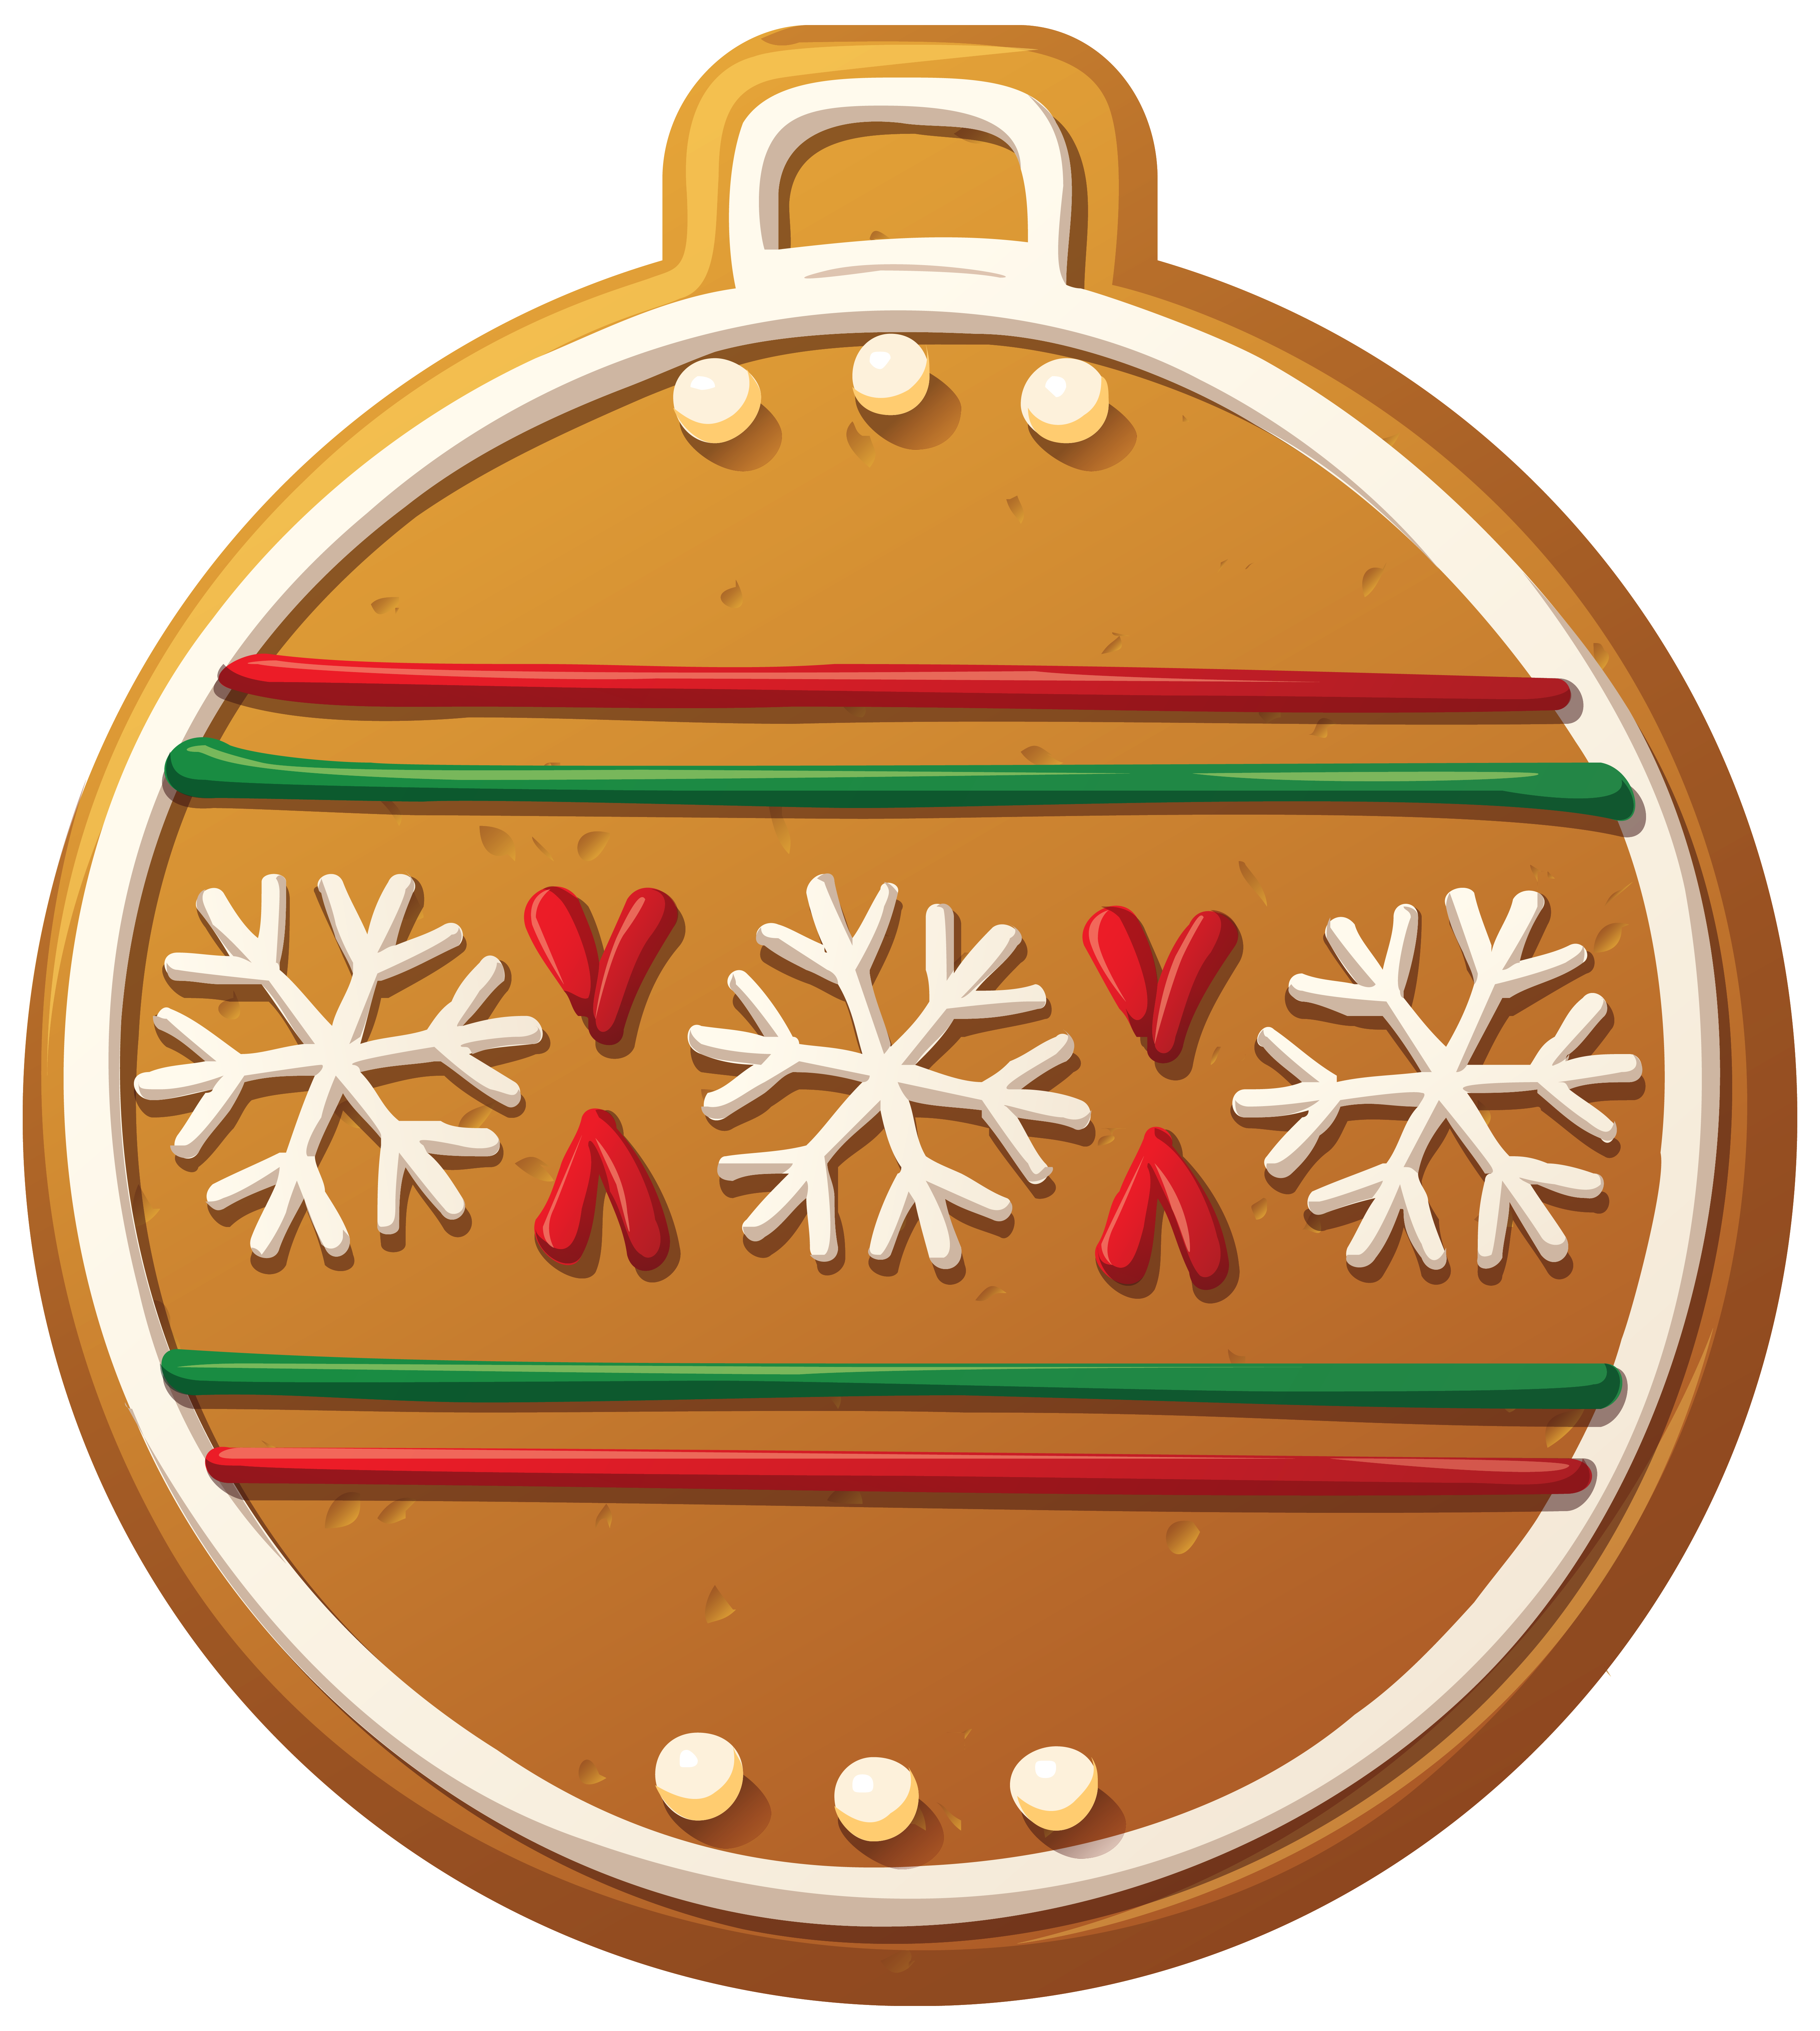 Gingerbread clipart christmas tree. Ball ornament png clip